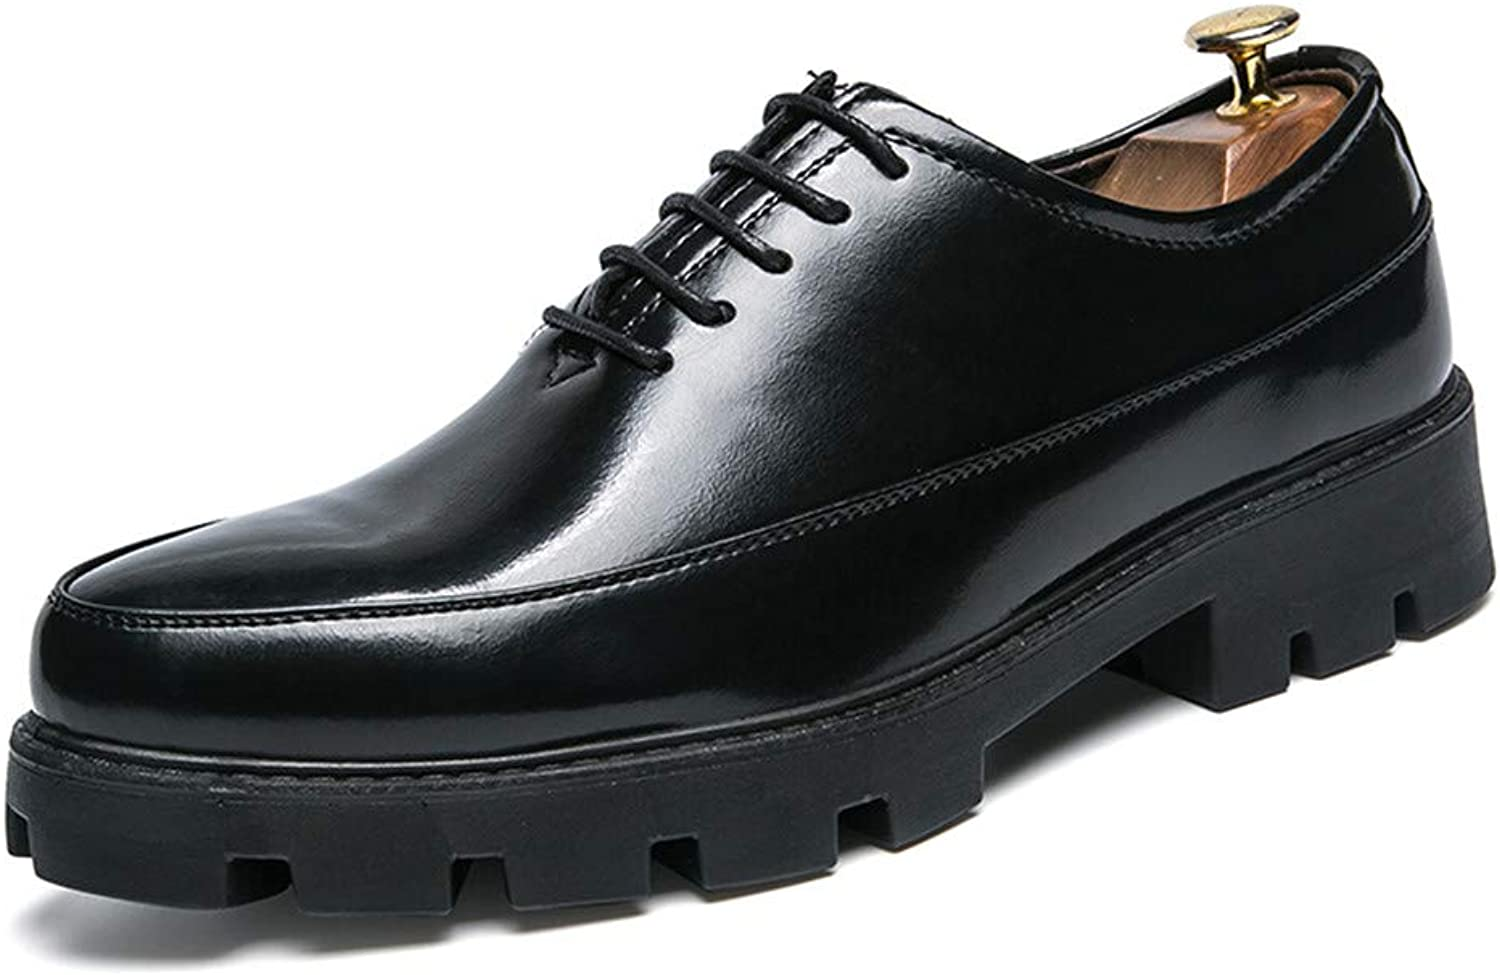 JIALUN-shoes Men's Simple Business Oxford Casual Height Increasing Insole Thick Waterproof Patent Leather Formal shoes